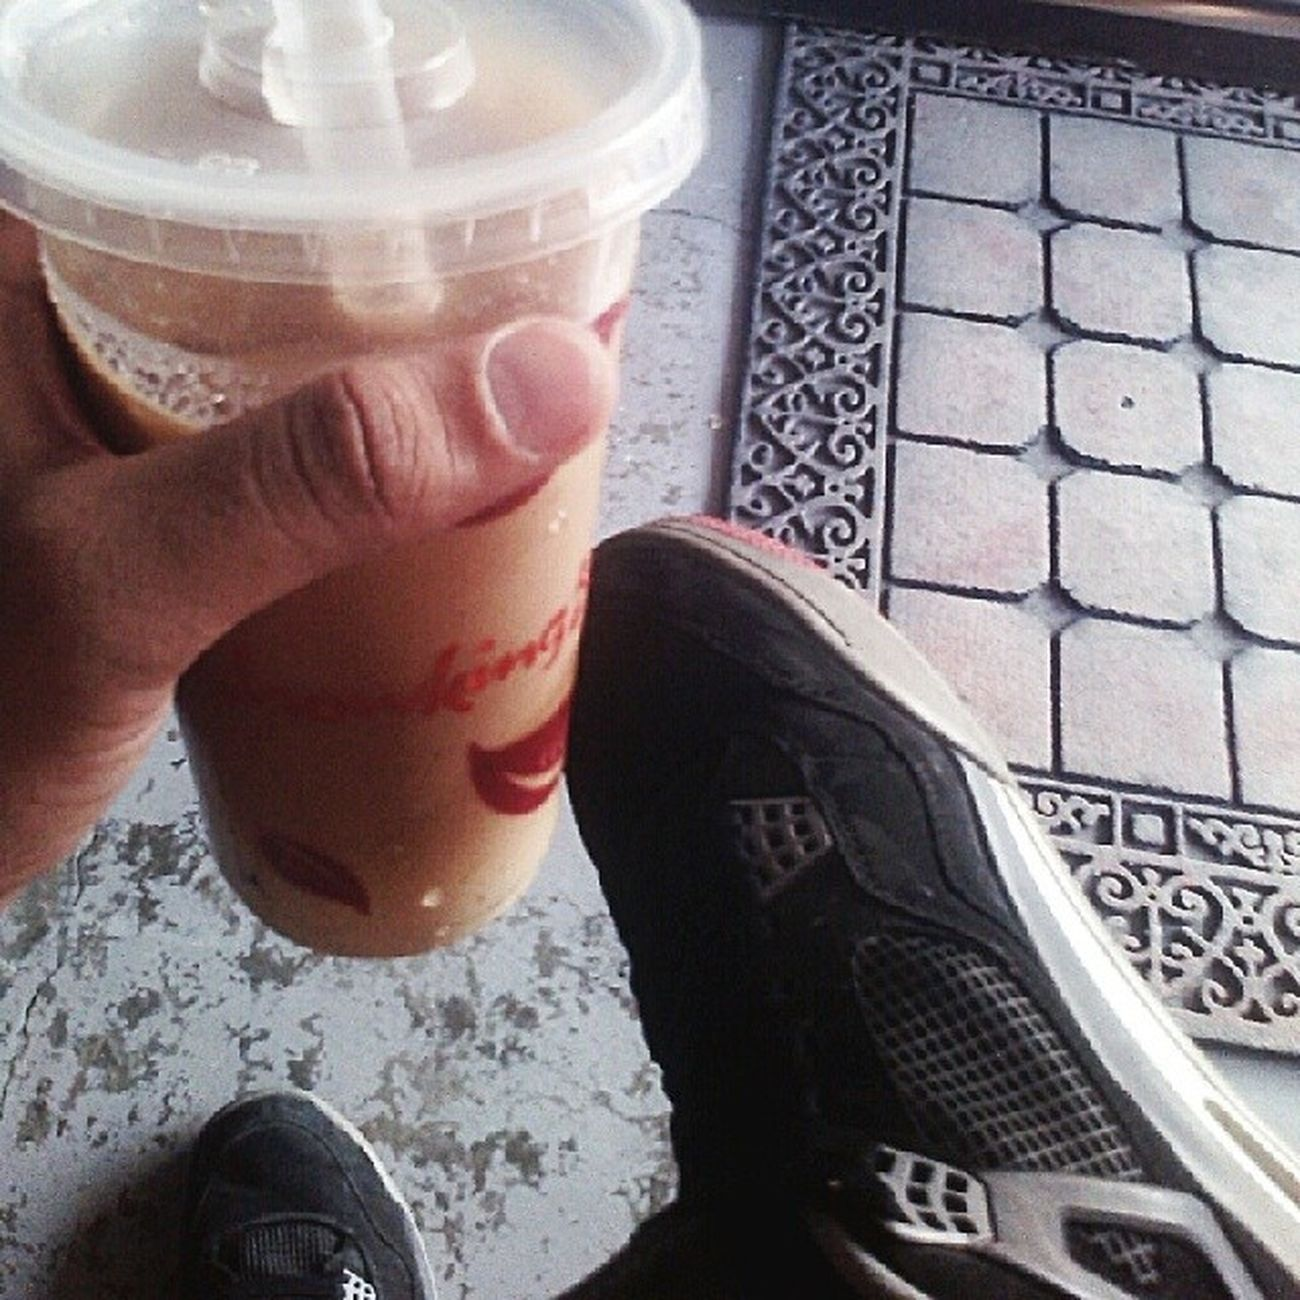 developin a habiiit from someone you know who drinks milktea a lot, didnt know id actually get to have the same habiiit as well, i guess theres that connection that makes it happen, cheeers fer the fellas feelin hot out today! Milktea Tripnoticthursday King - pdk DongaloWreckords 1 clarkfieldpampanga